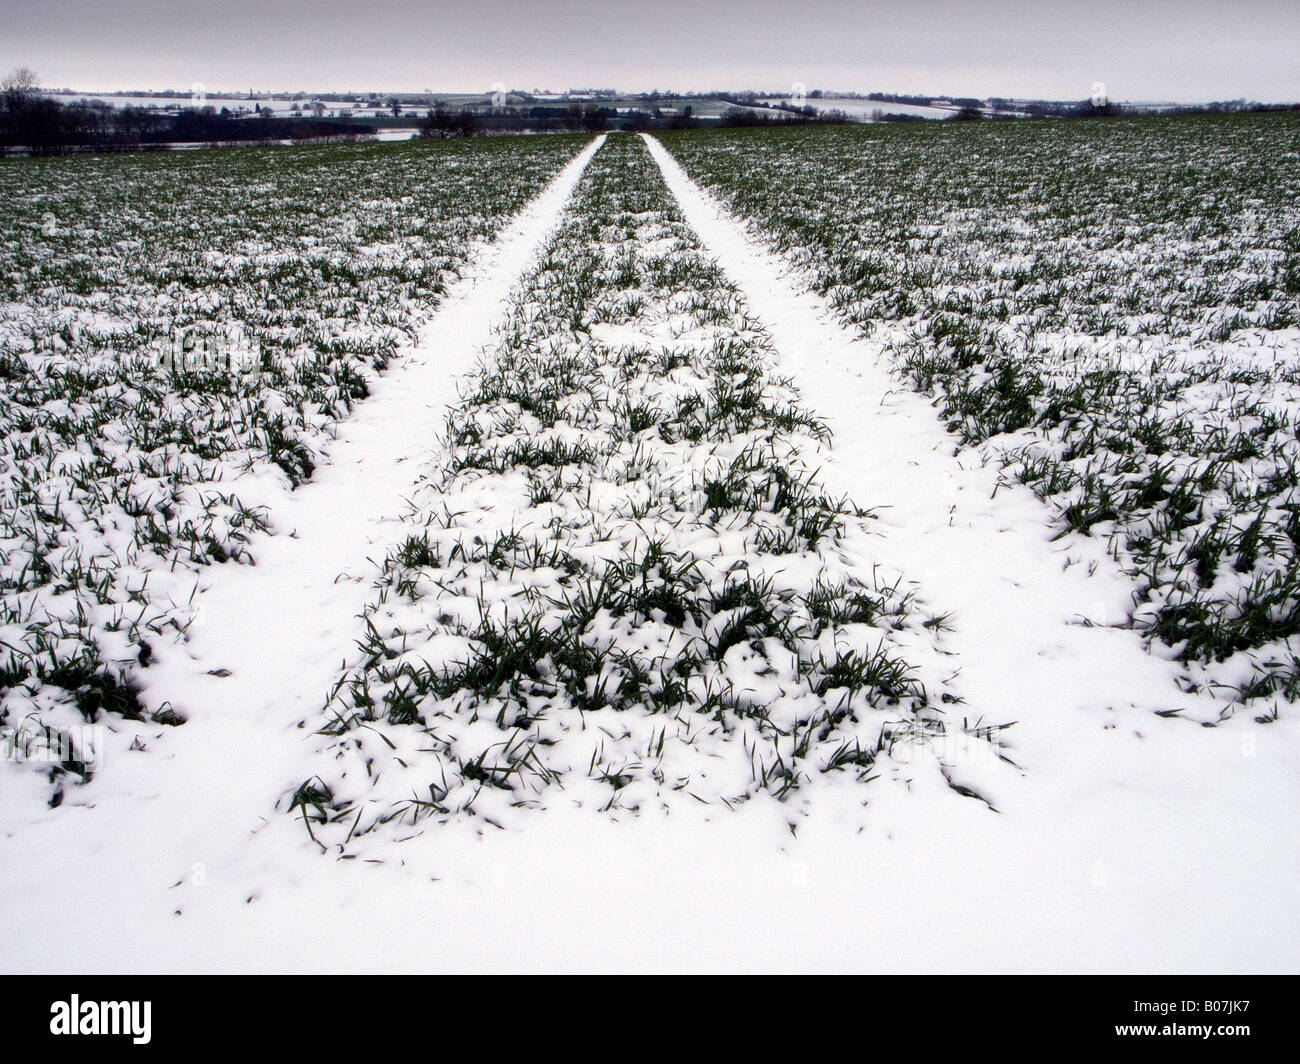 FARMLAND PATH INFINITY DIRECTION FOLLOW SNOW FOOTPATH PUBLIC RIGHT OF WAY WINTER COLD - Stock Image